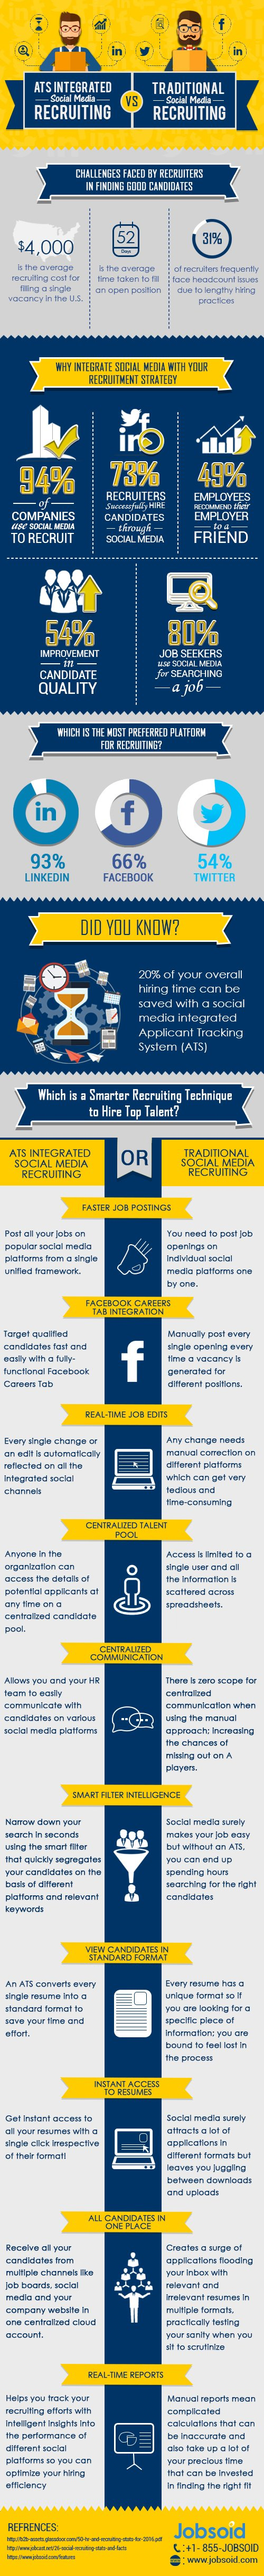 ATS Integrated Social Media Recruiting